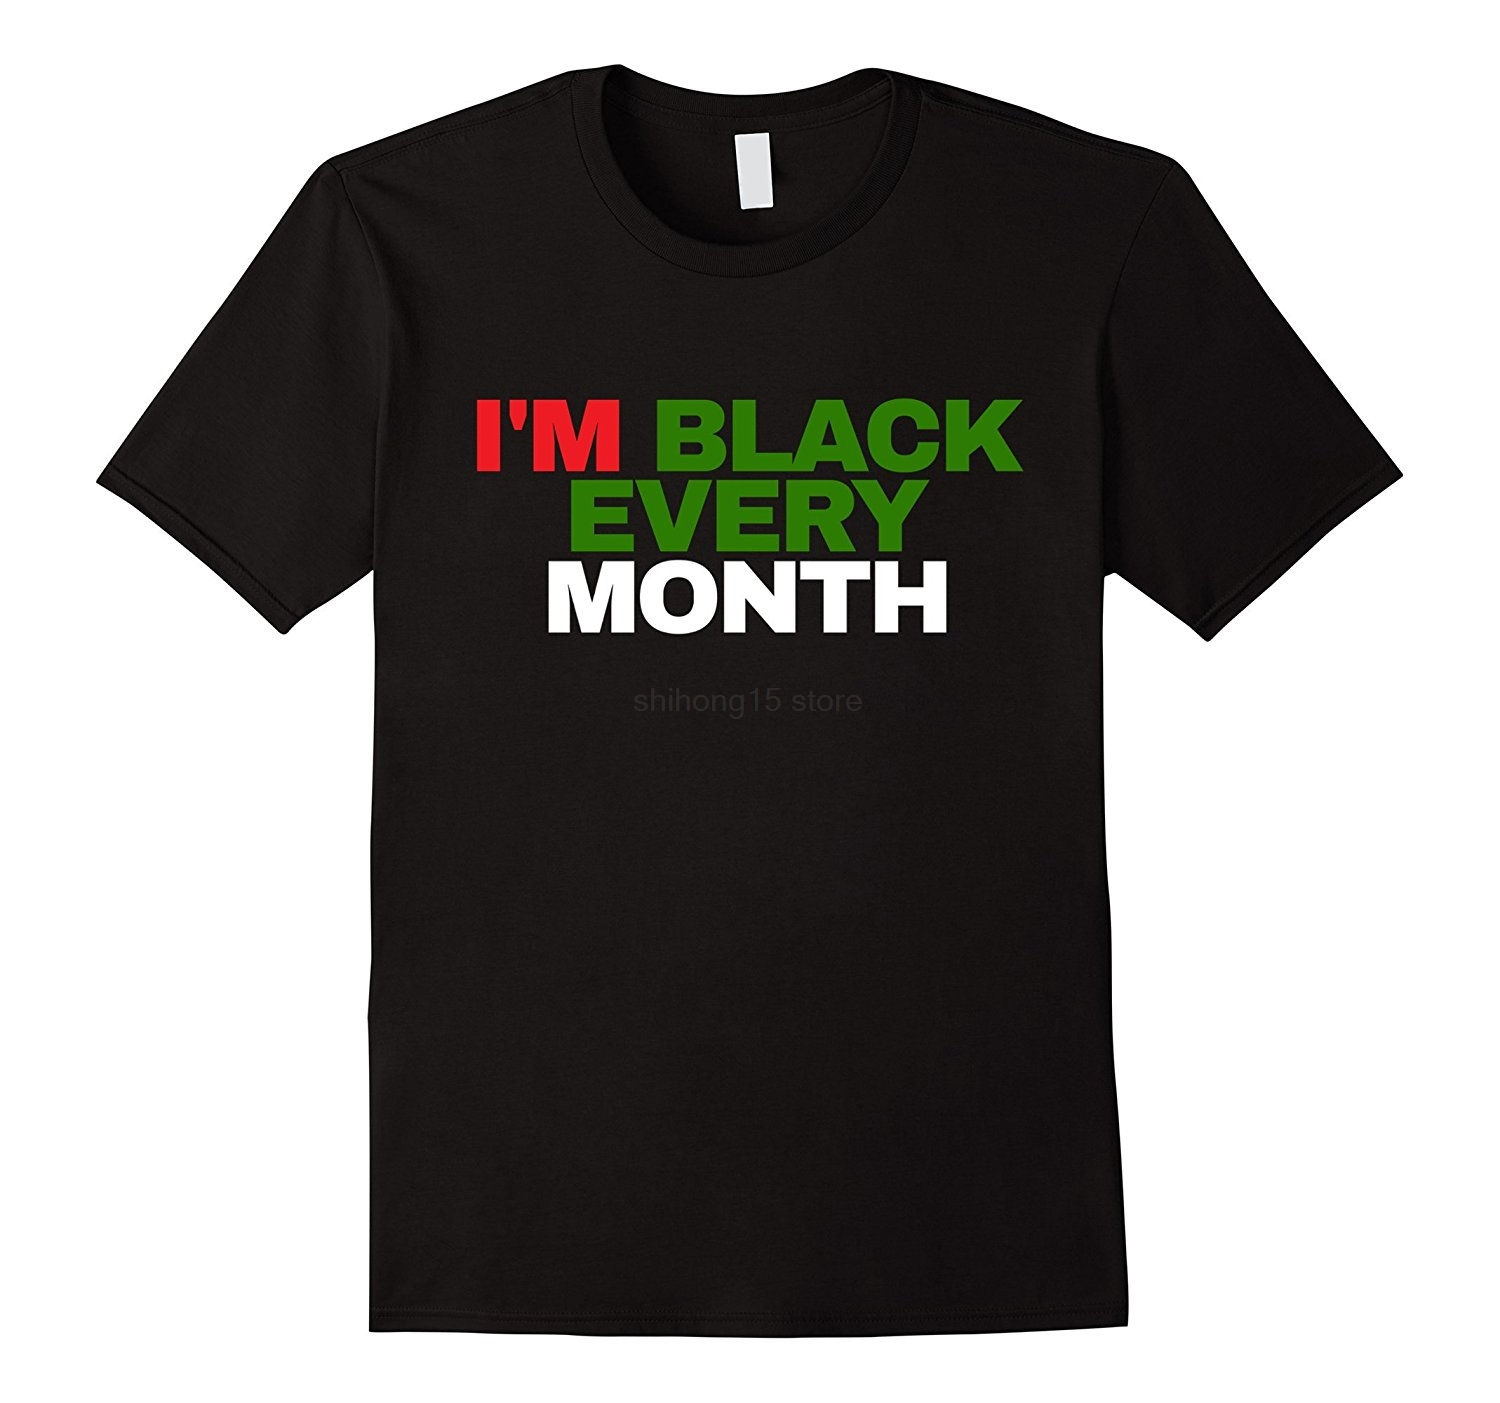 Black History Month <font><b>T</b></font>-<font><b>Shirt</b></font> Angela Davis, <font><b>Malcolm</b></font> <font><b>X</b></font>, Huey P Newton, Garvey Adult 100% Cotton Customized Top Tees <font><b>T</b></font> <font><b>Shirt</b></font> image